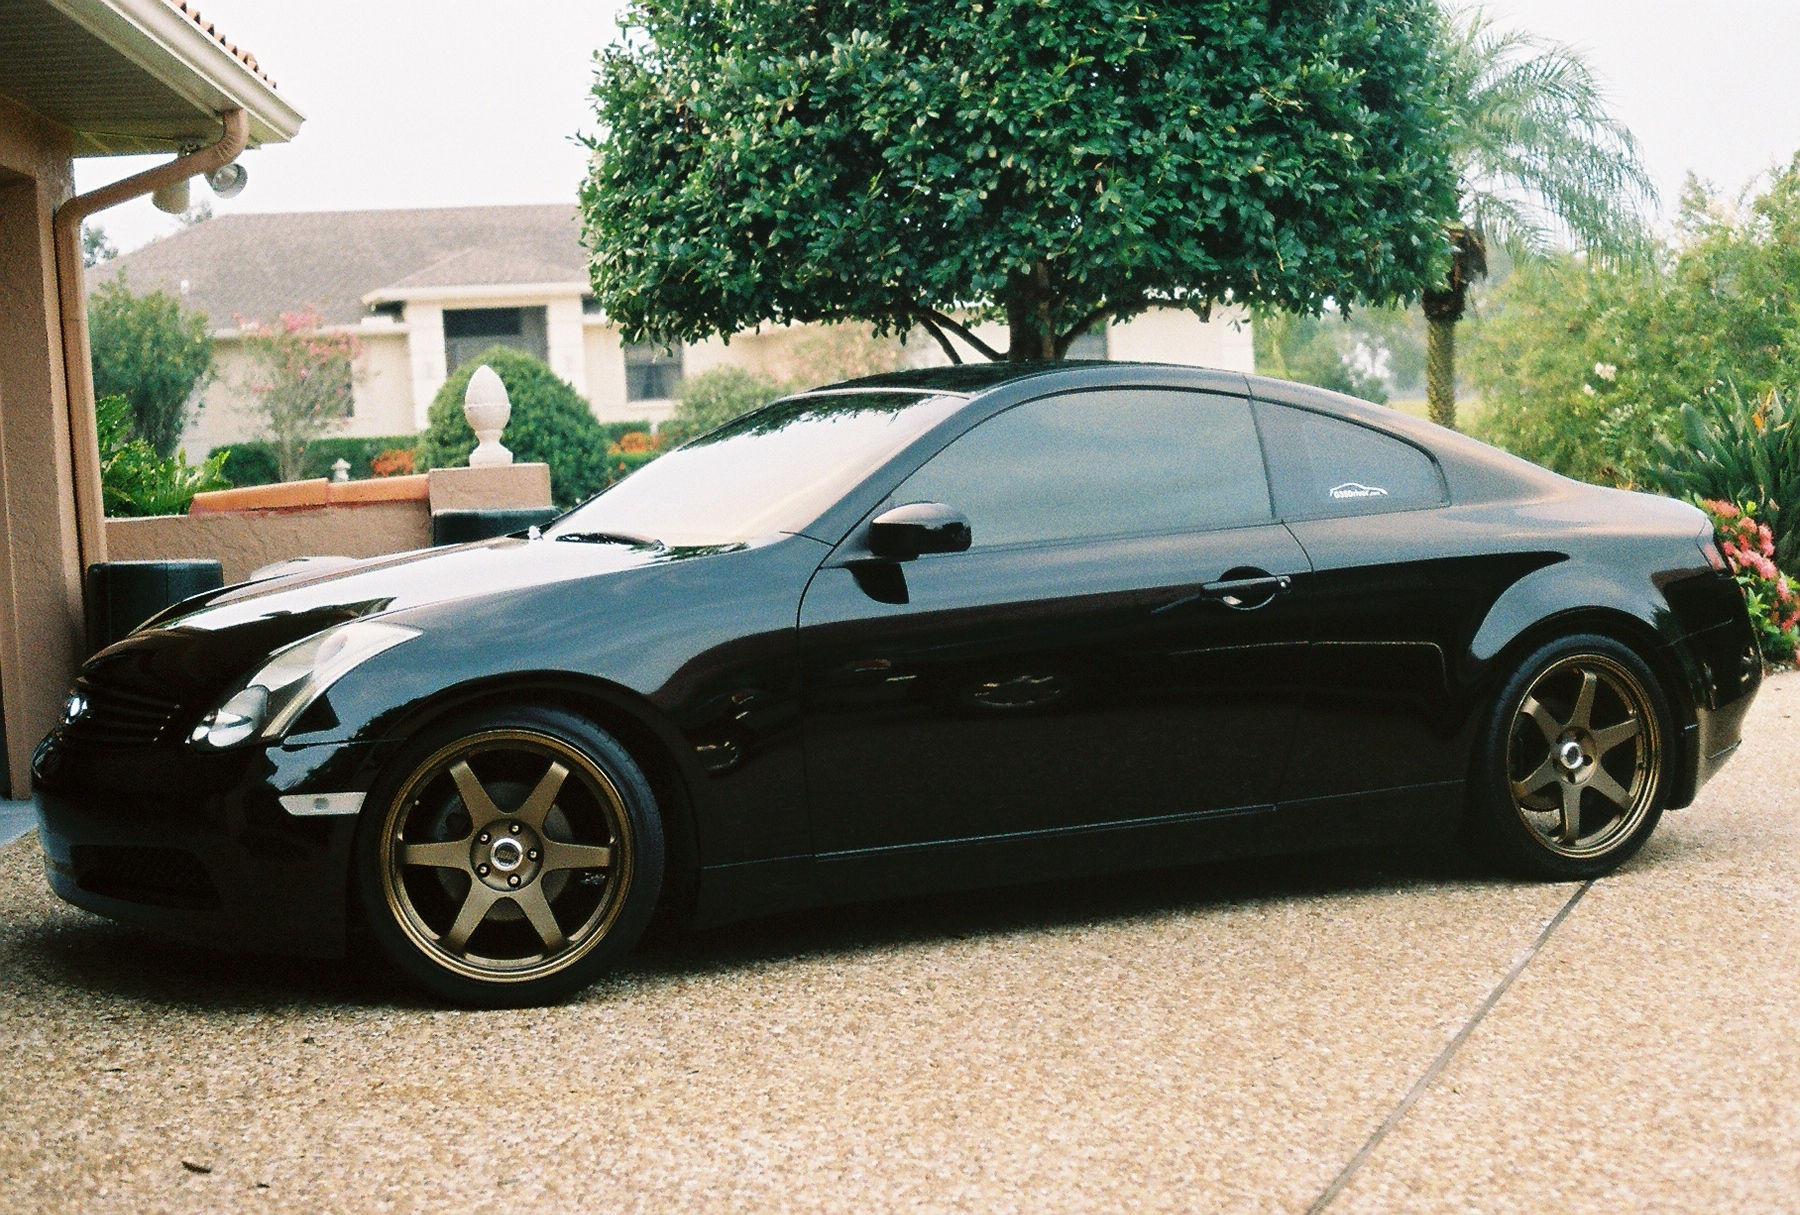 infiniti g35 coupe-pic. 1